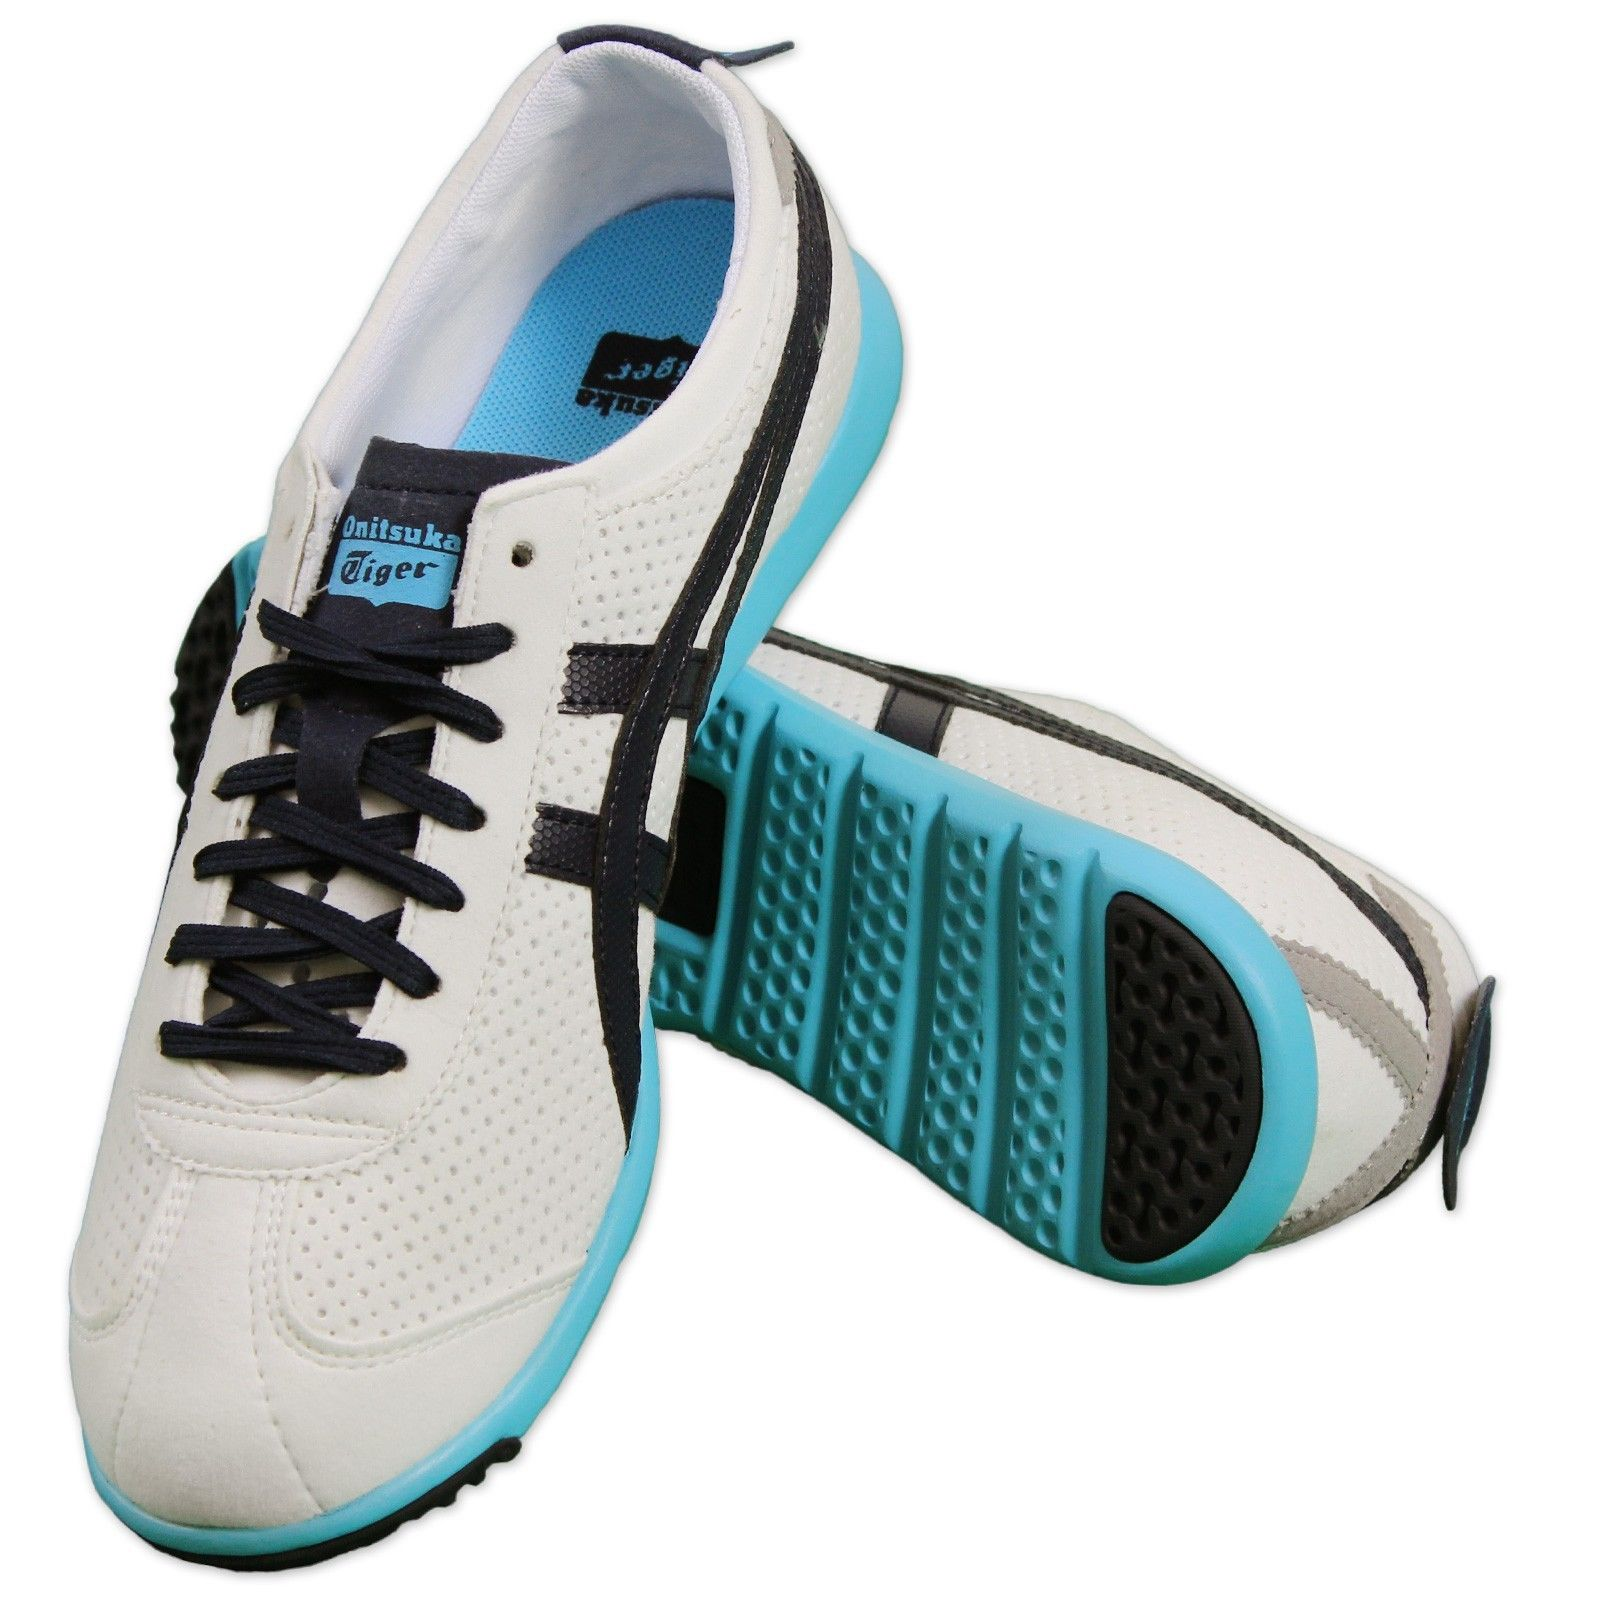 9a41cfe0dd22 Details about ASICS Onitsuka Tiger Rio Runners Sneakers Light Weight Shoes  Casual White Navy